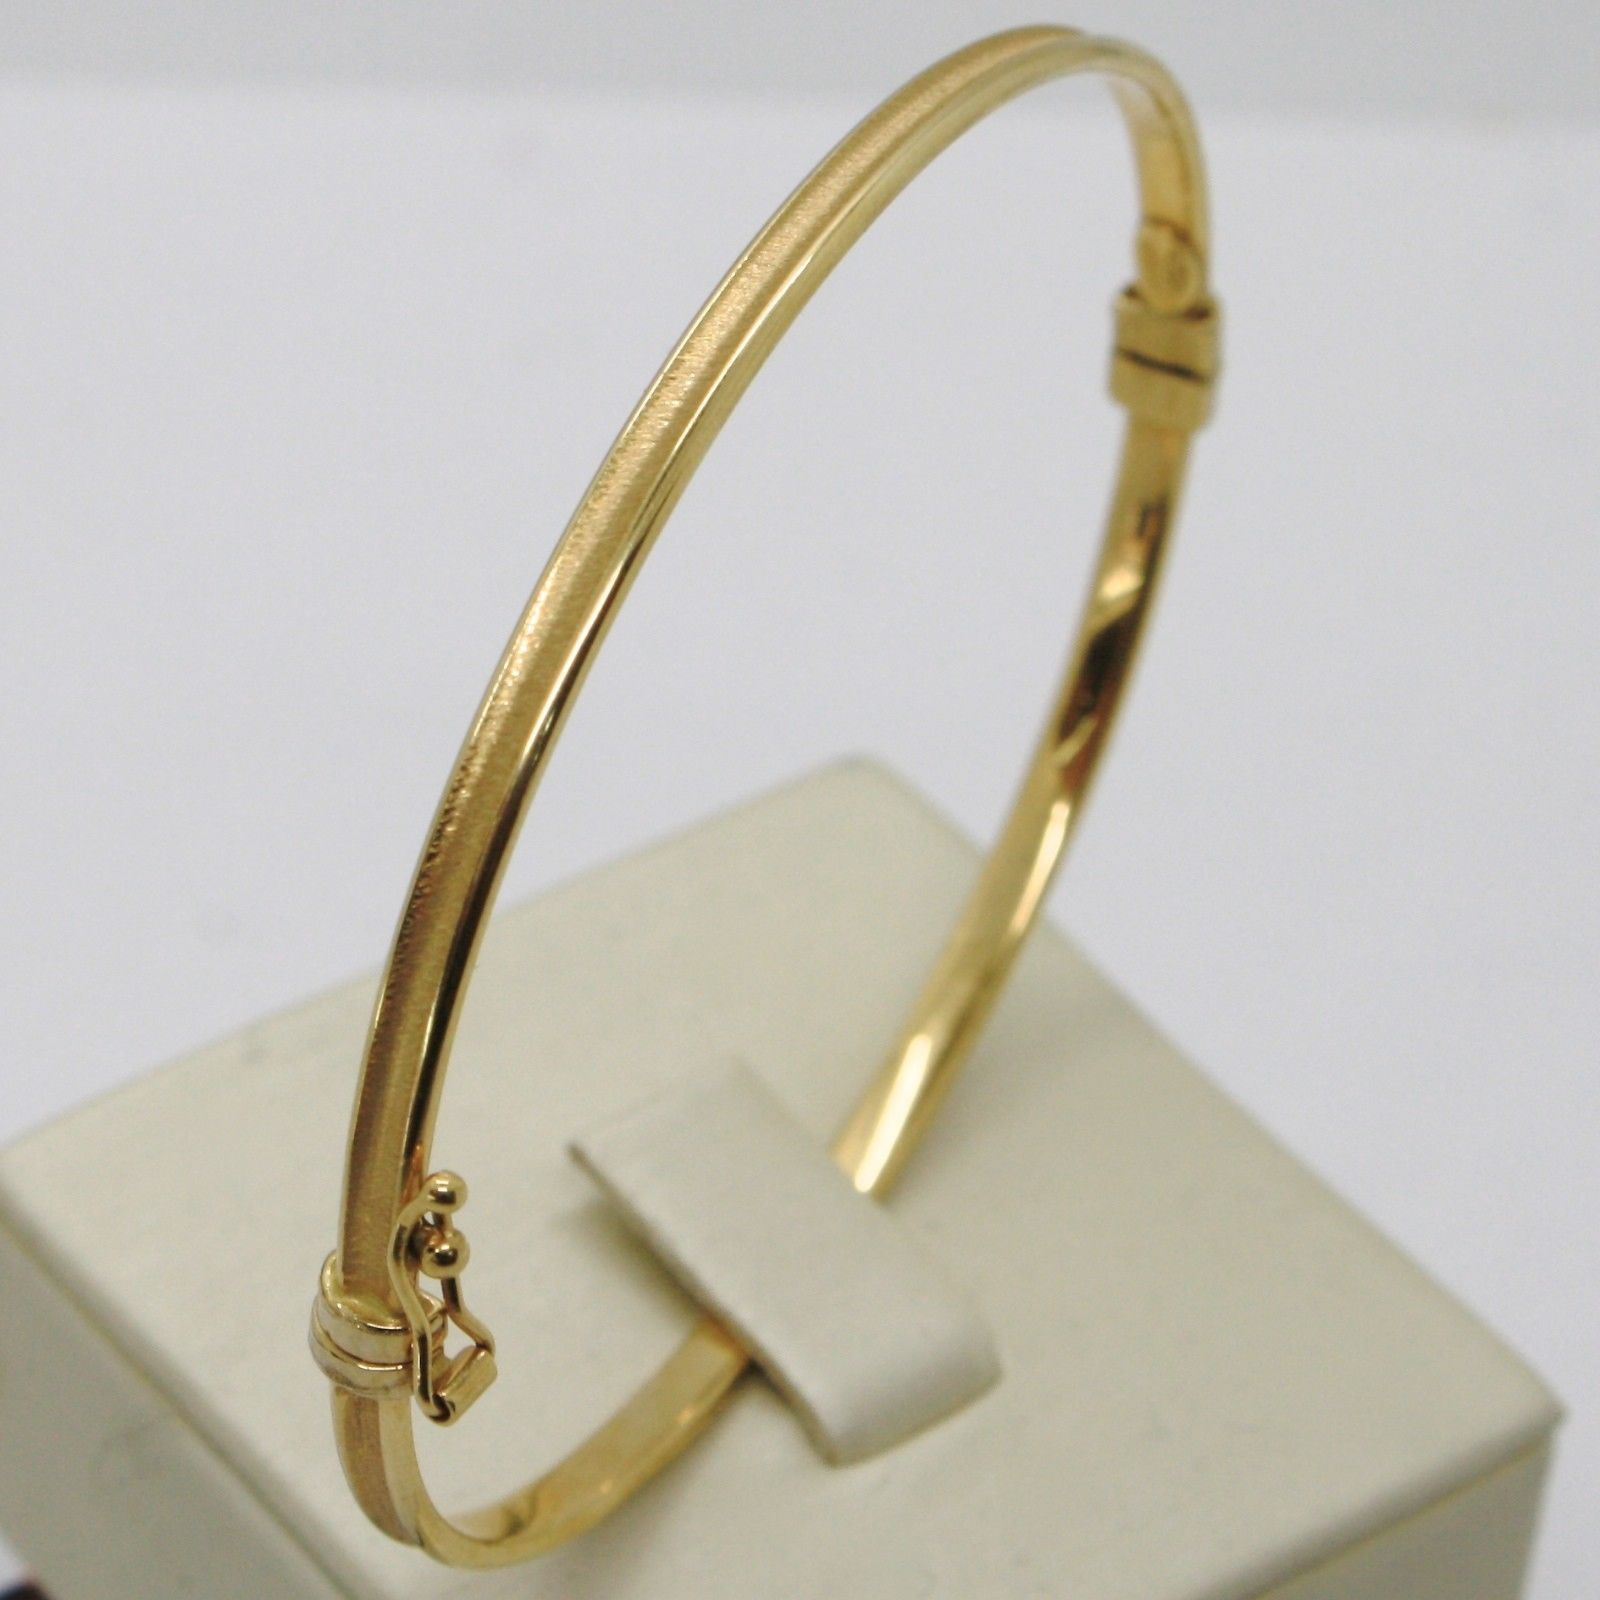 BRACELET YELLOW GOLD 18K 750 RIGID POLISHED AND SATIN MADE IN ITALY